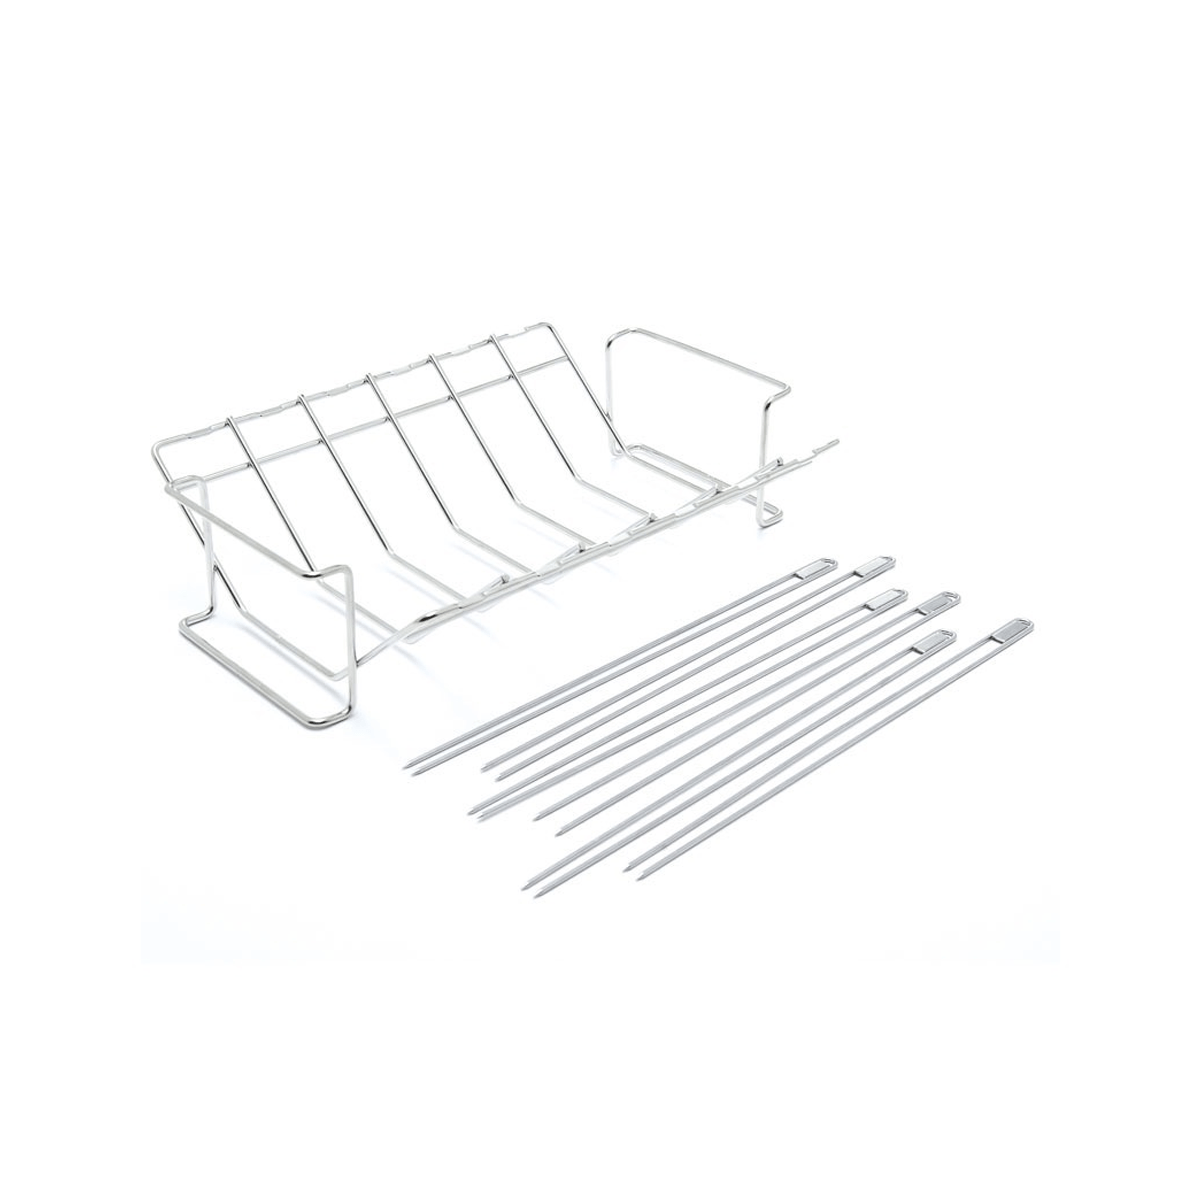 Broil King Multi Rack and Skewer Kit (9.5x35x39.5cm, Stainless Steel) - SquareDubai